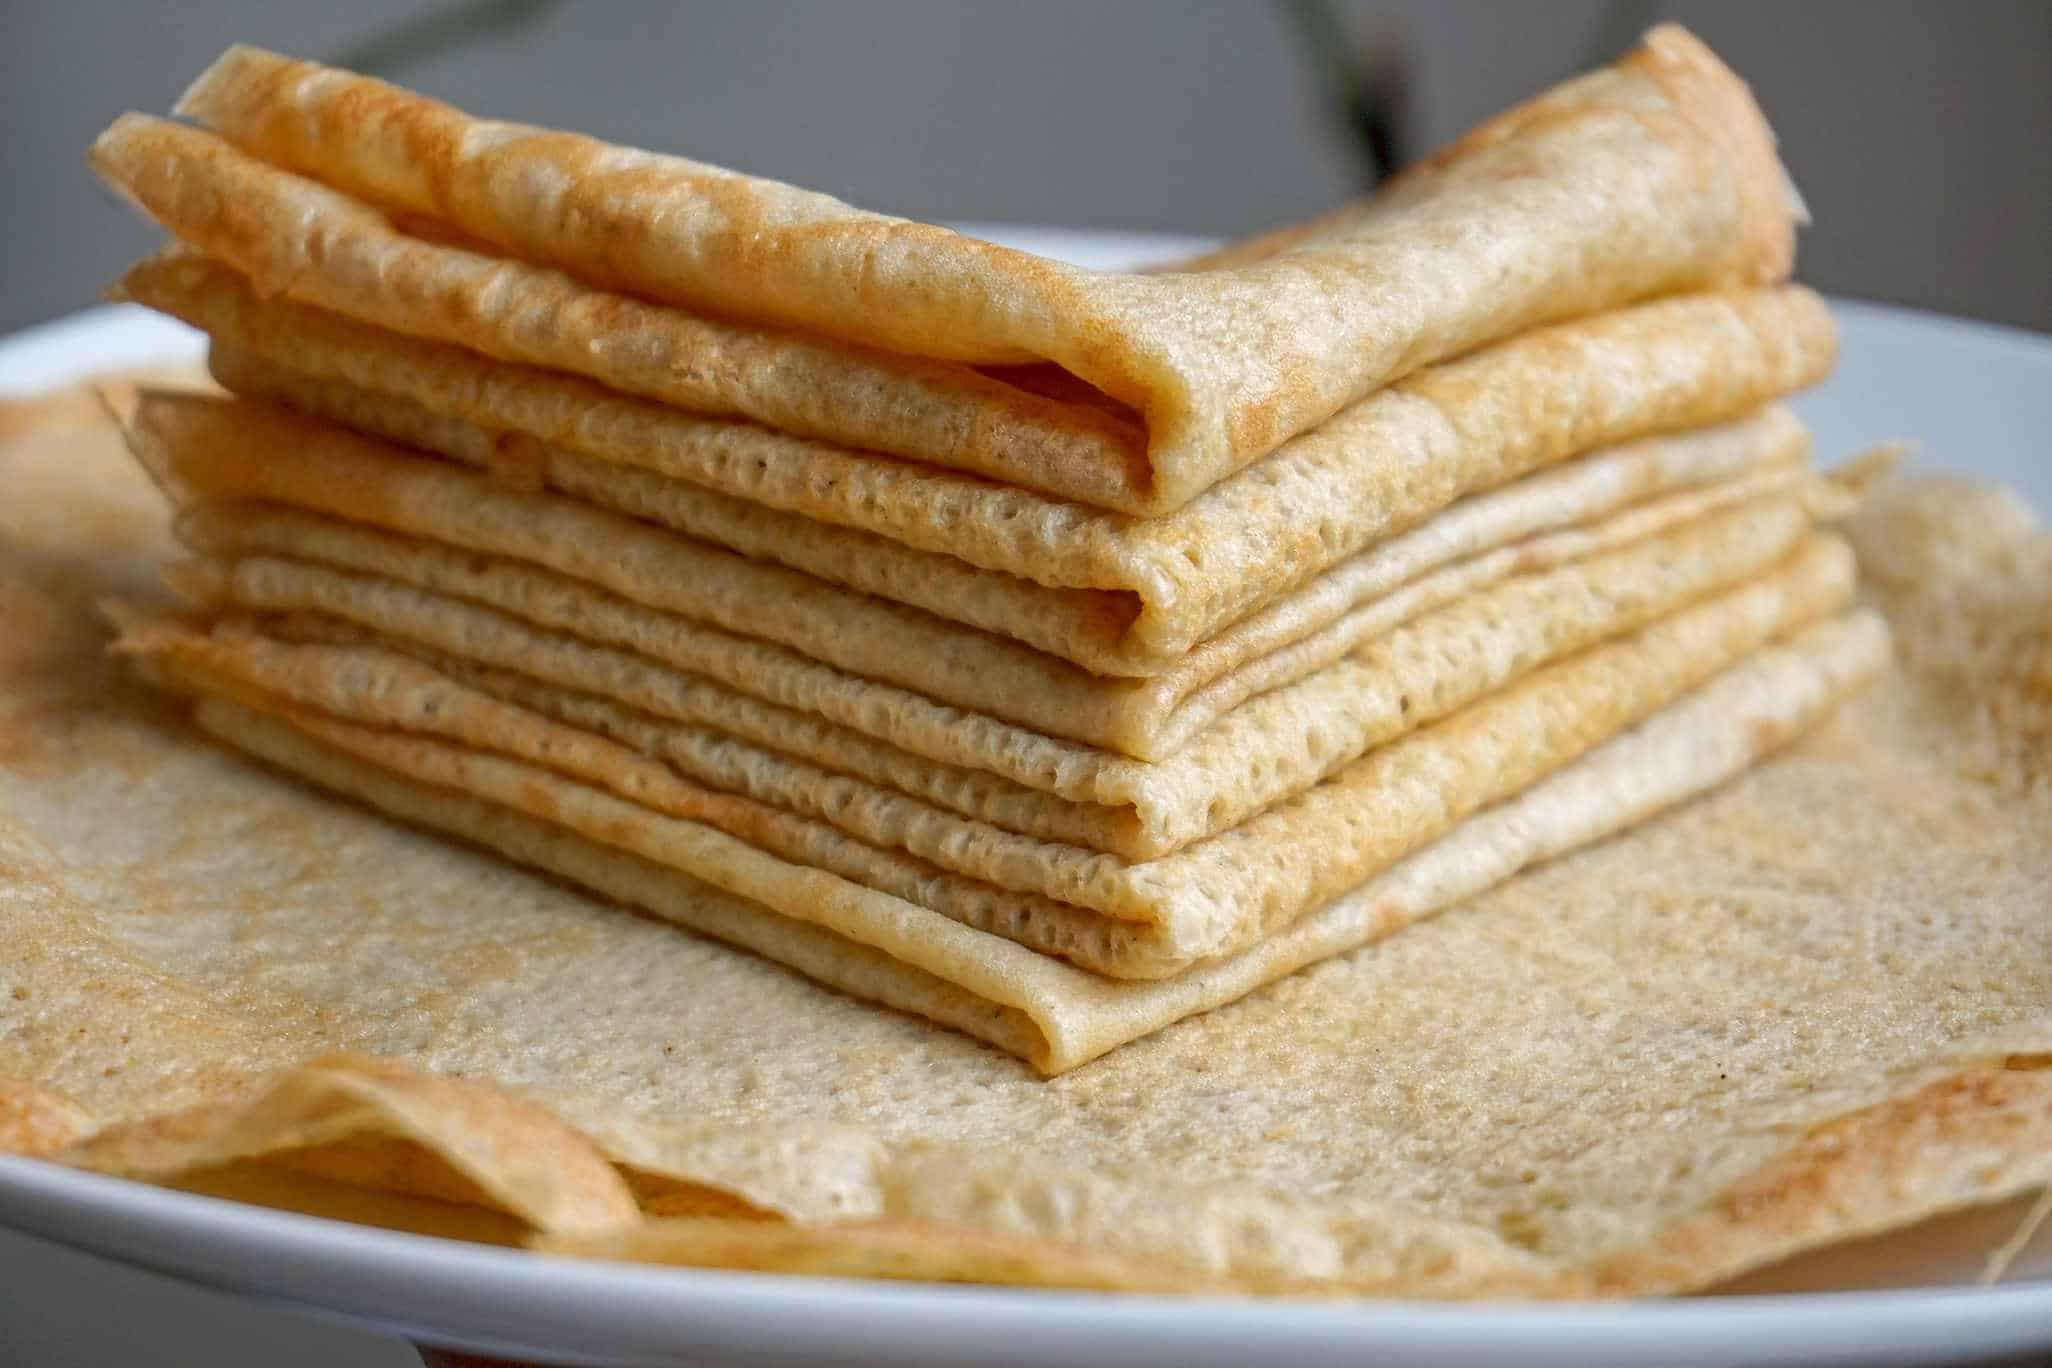 Gluten free crepe recipe - how to make gluten free crepes.